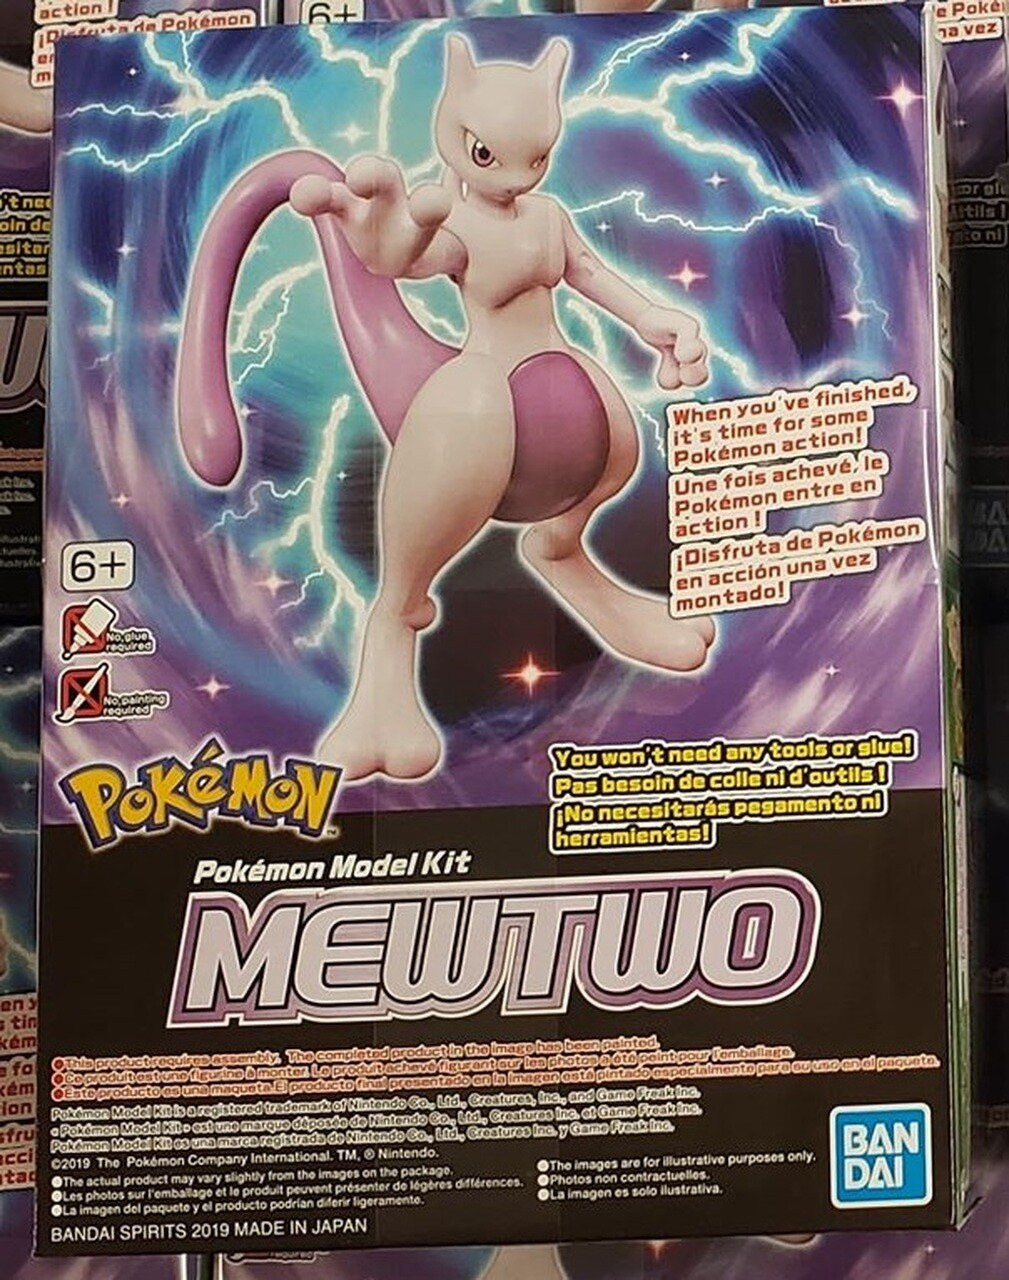 Pokemon Model Kit Mewtwo